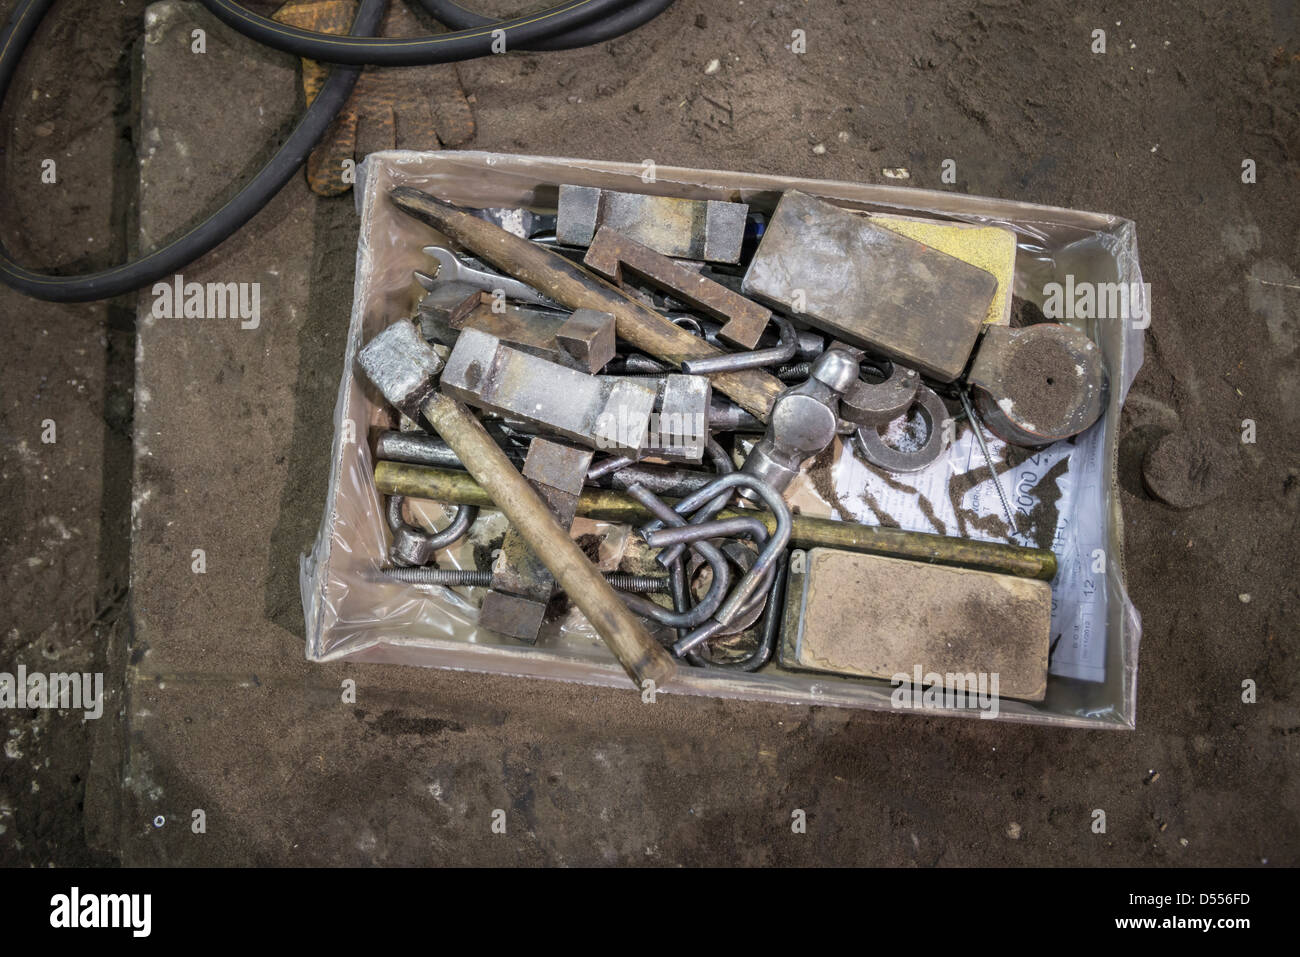 Box of tools in metal foundry - Stock Image